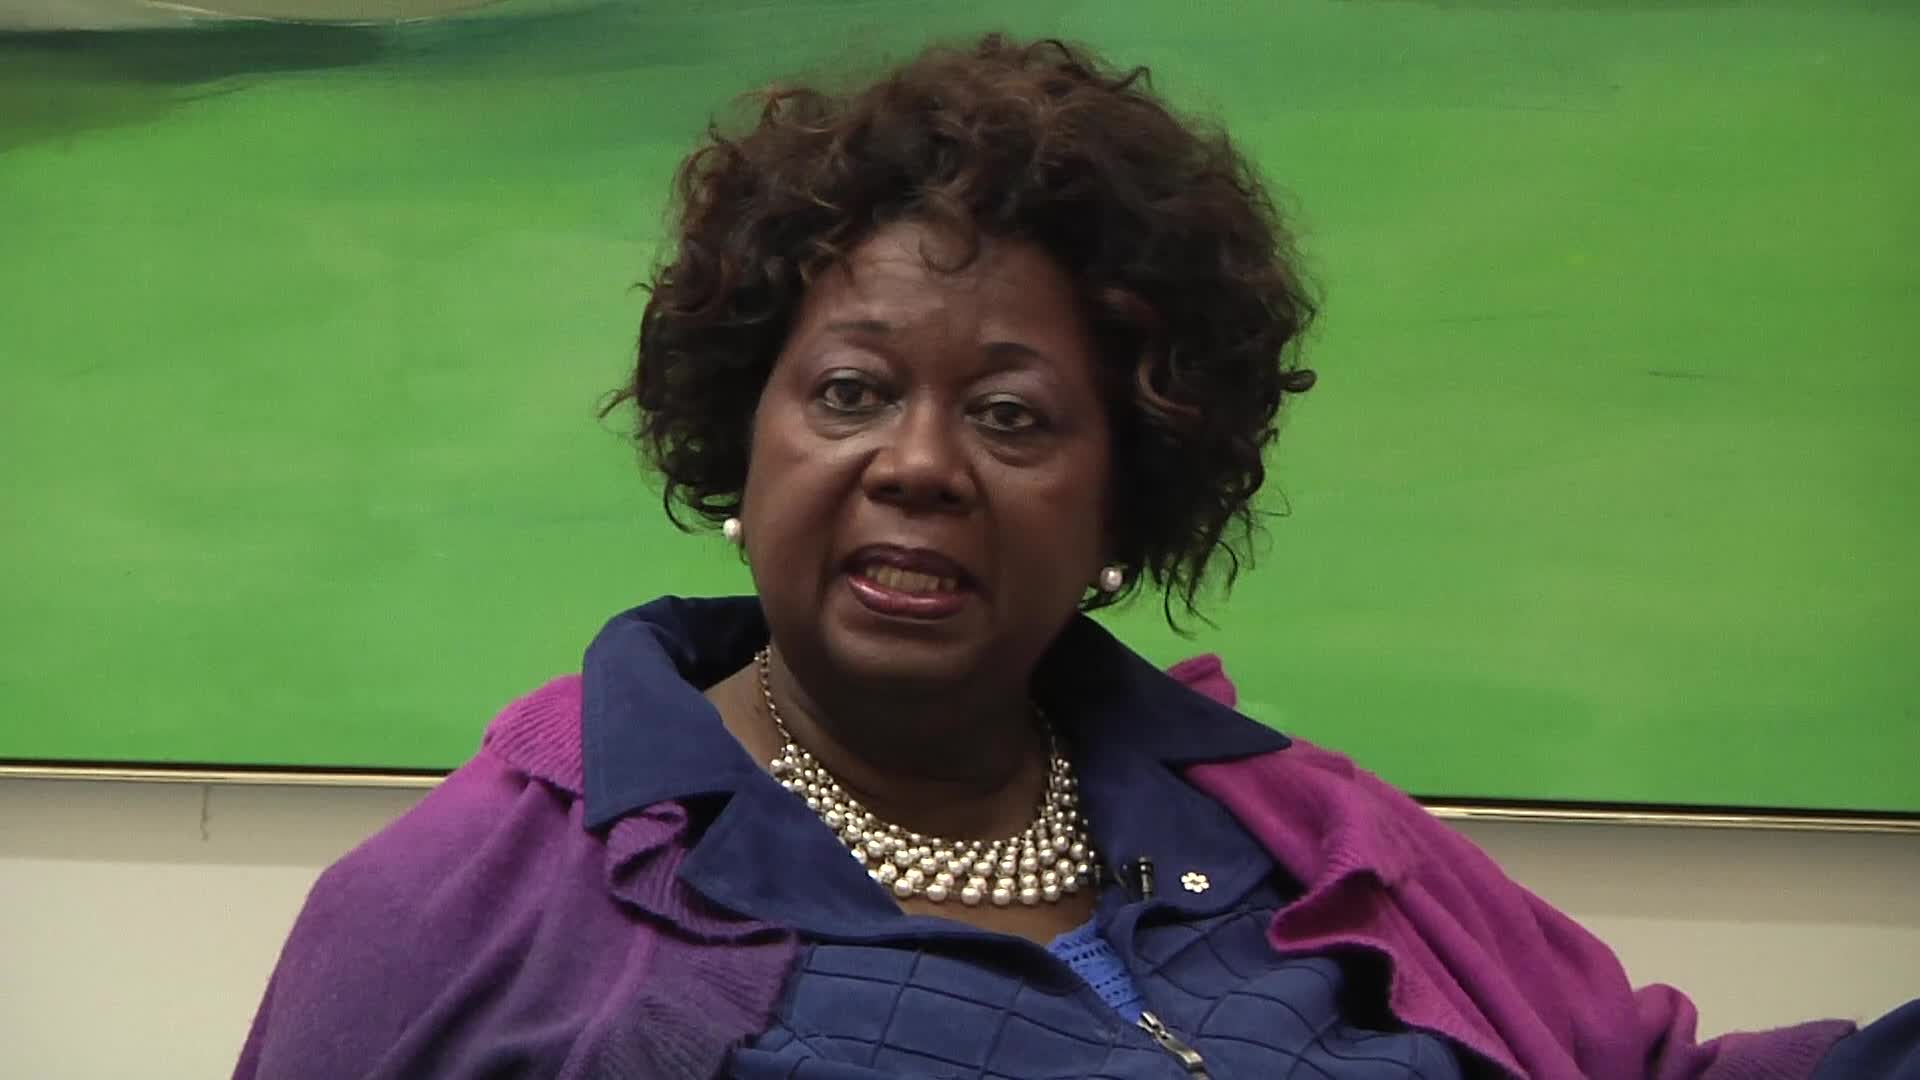 Jean Augustine interview: International Black Women's Congress button